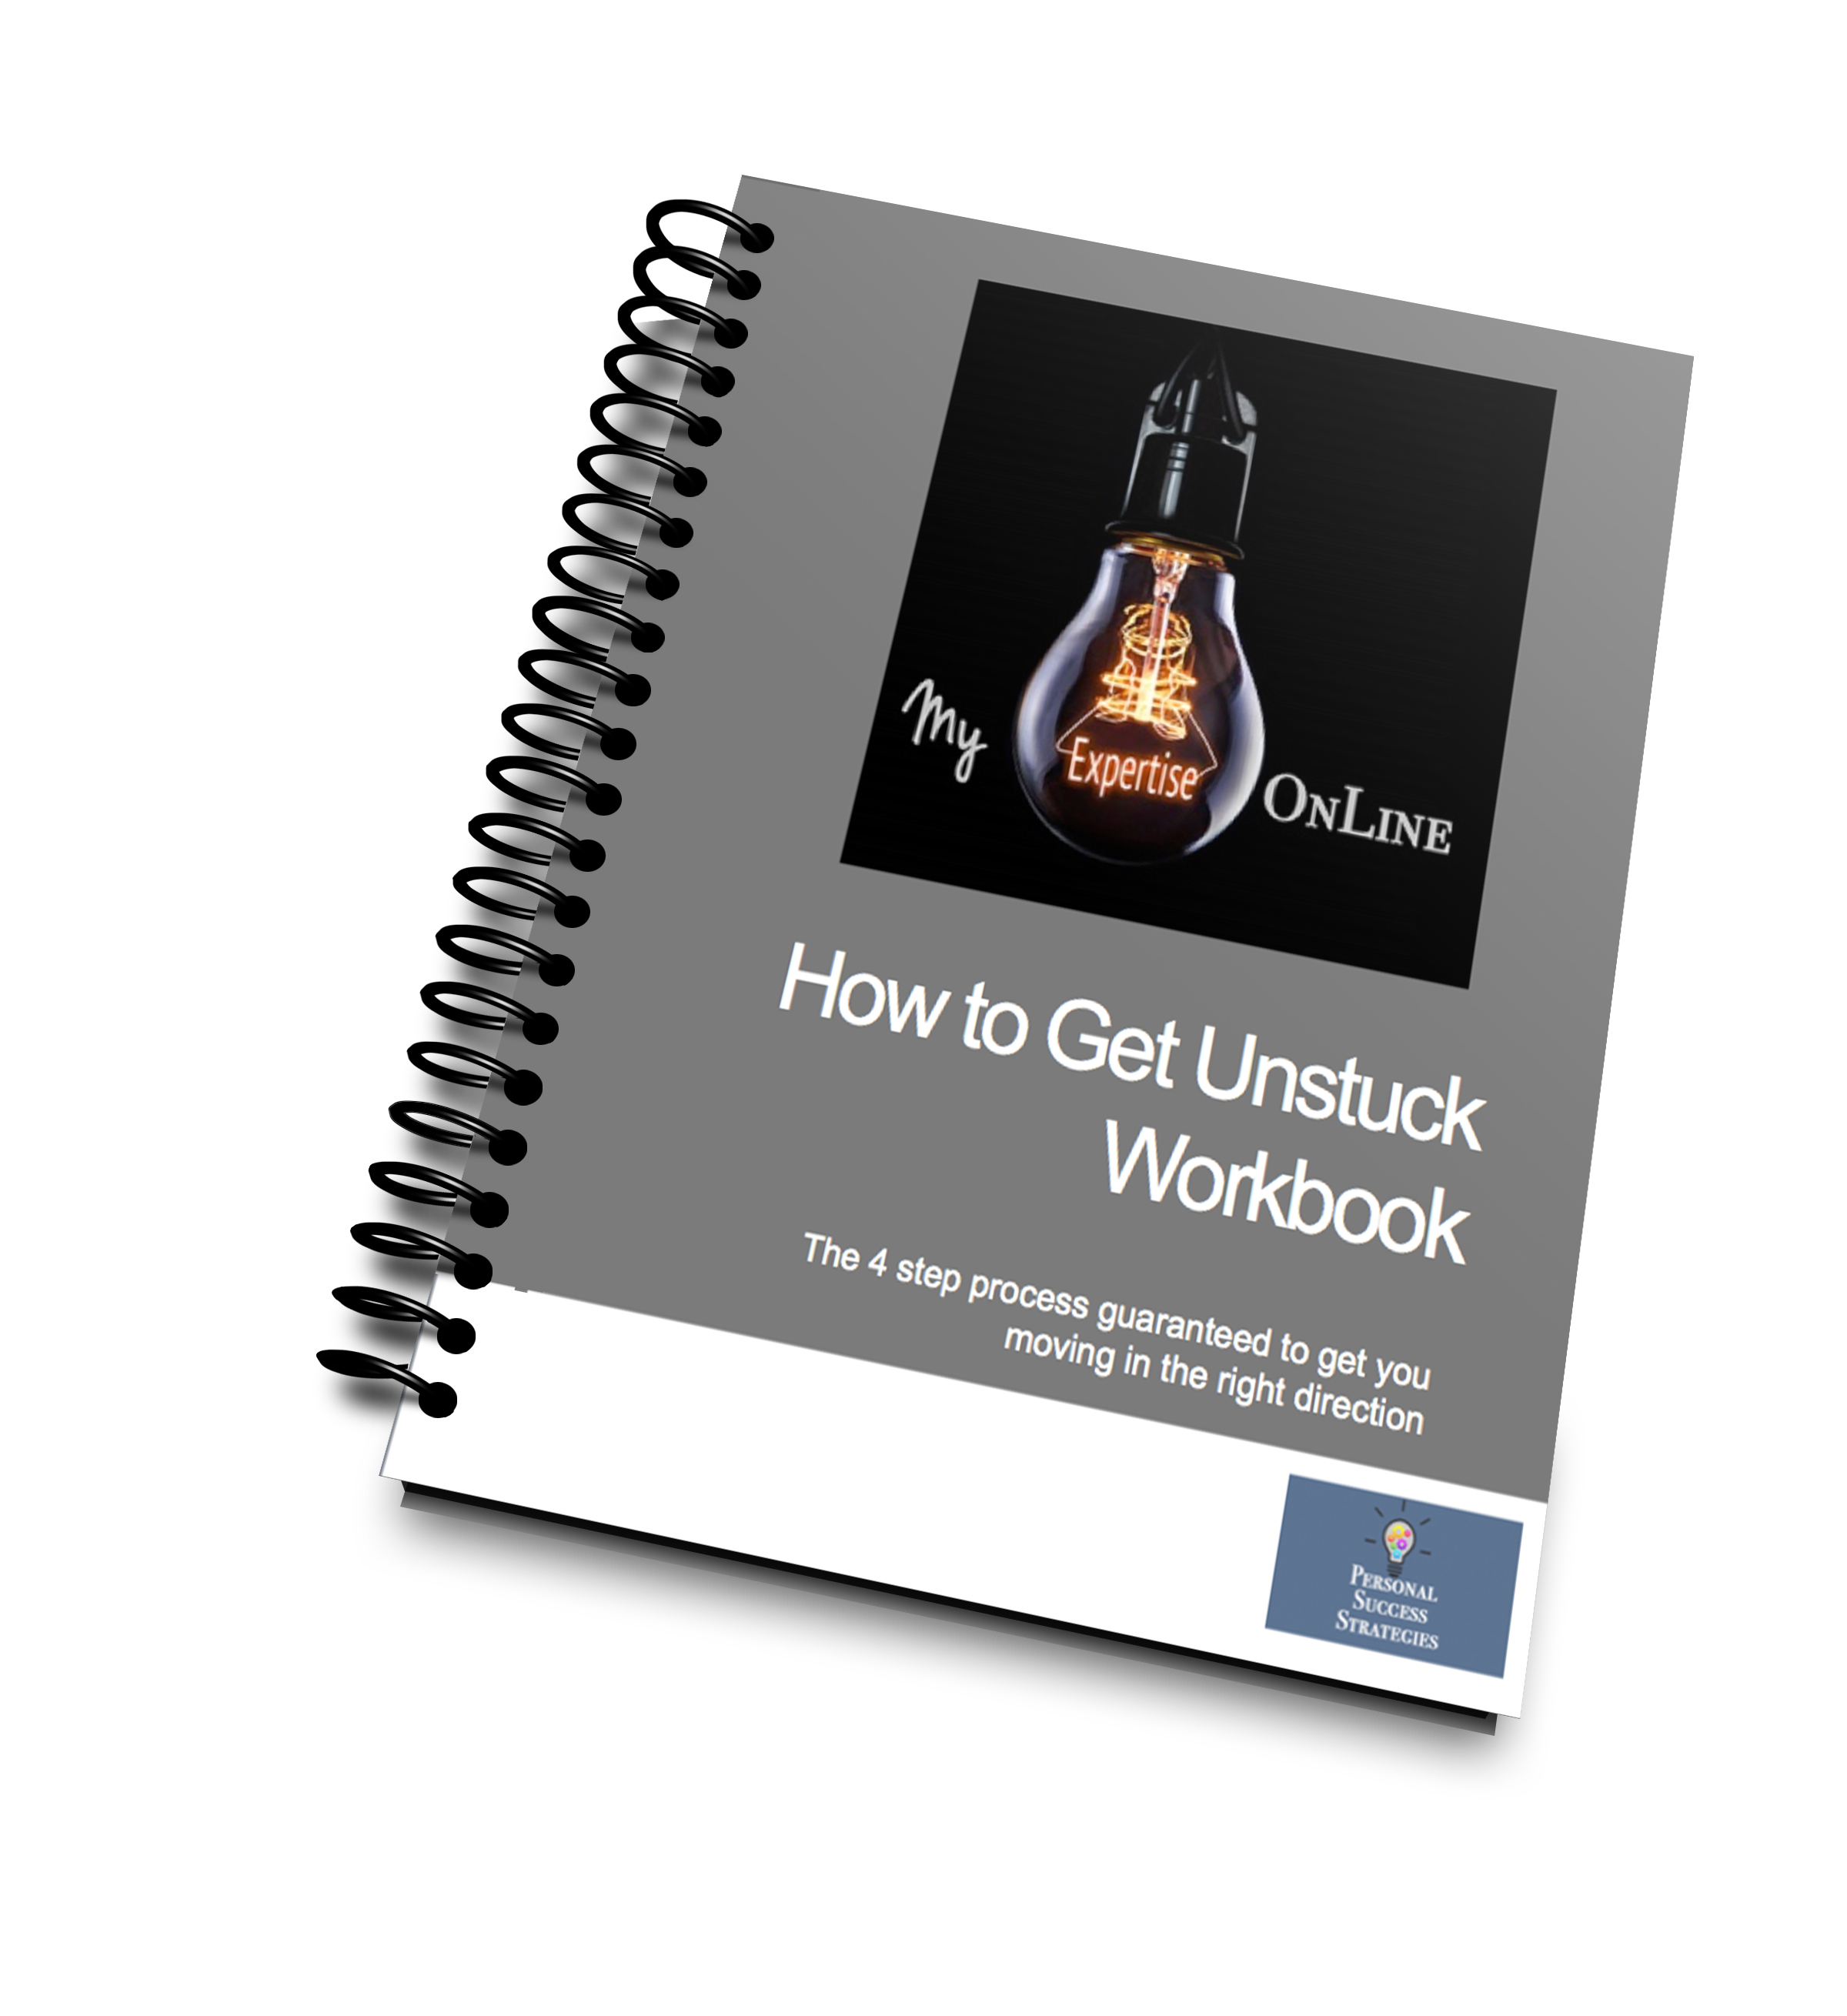 ------------------------------